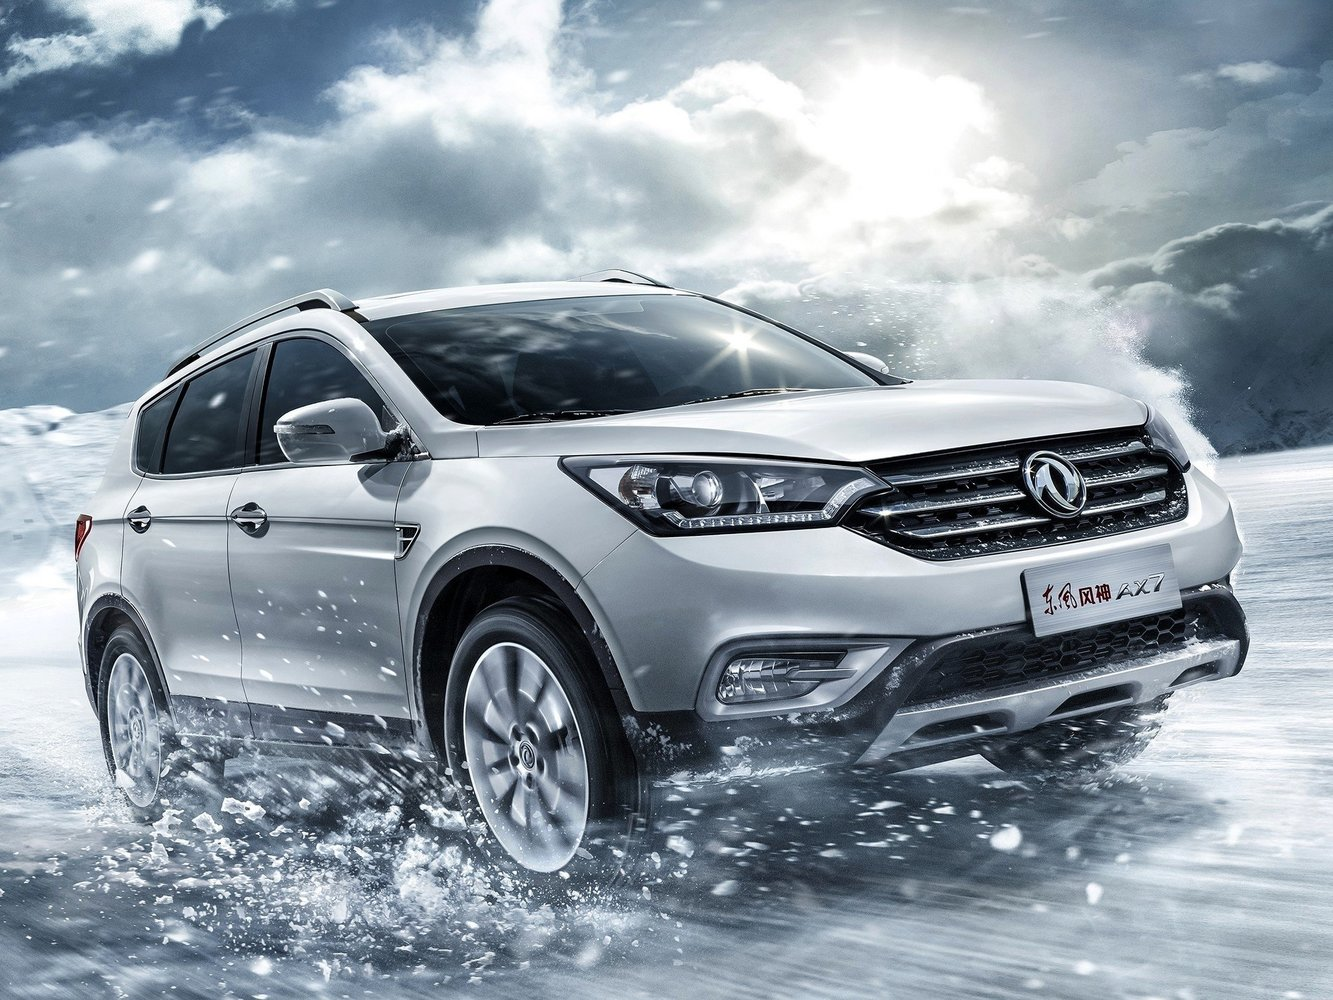 dongfeng DongFeng AX7